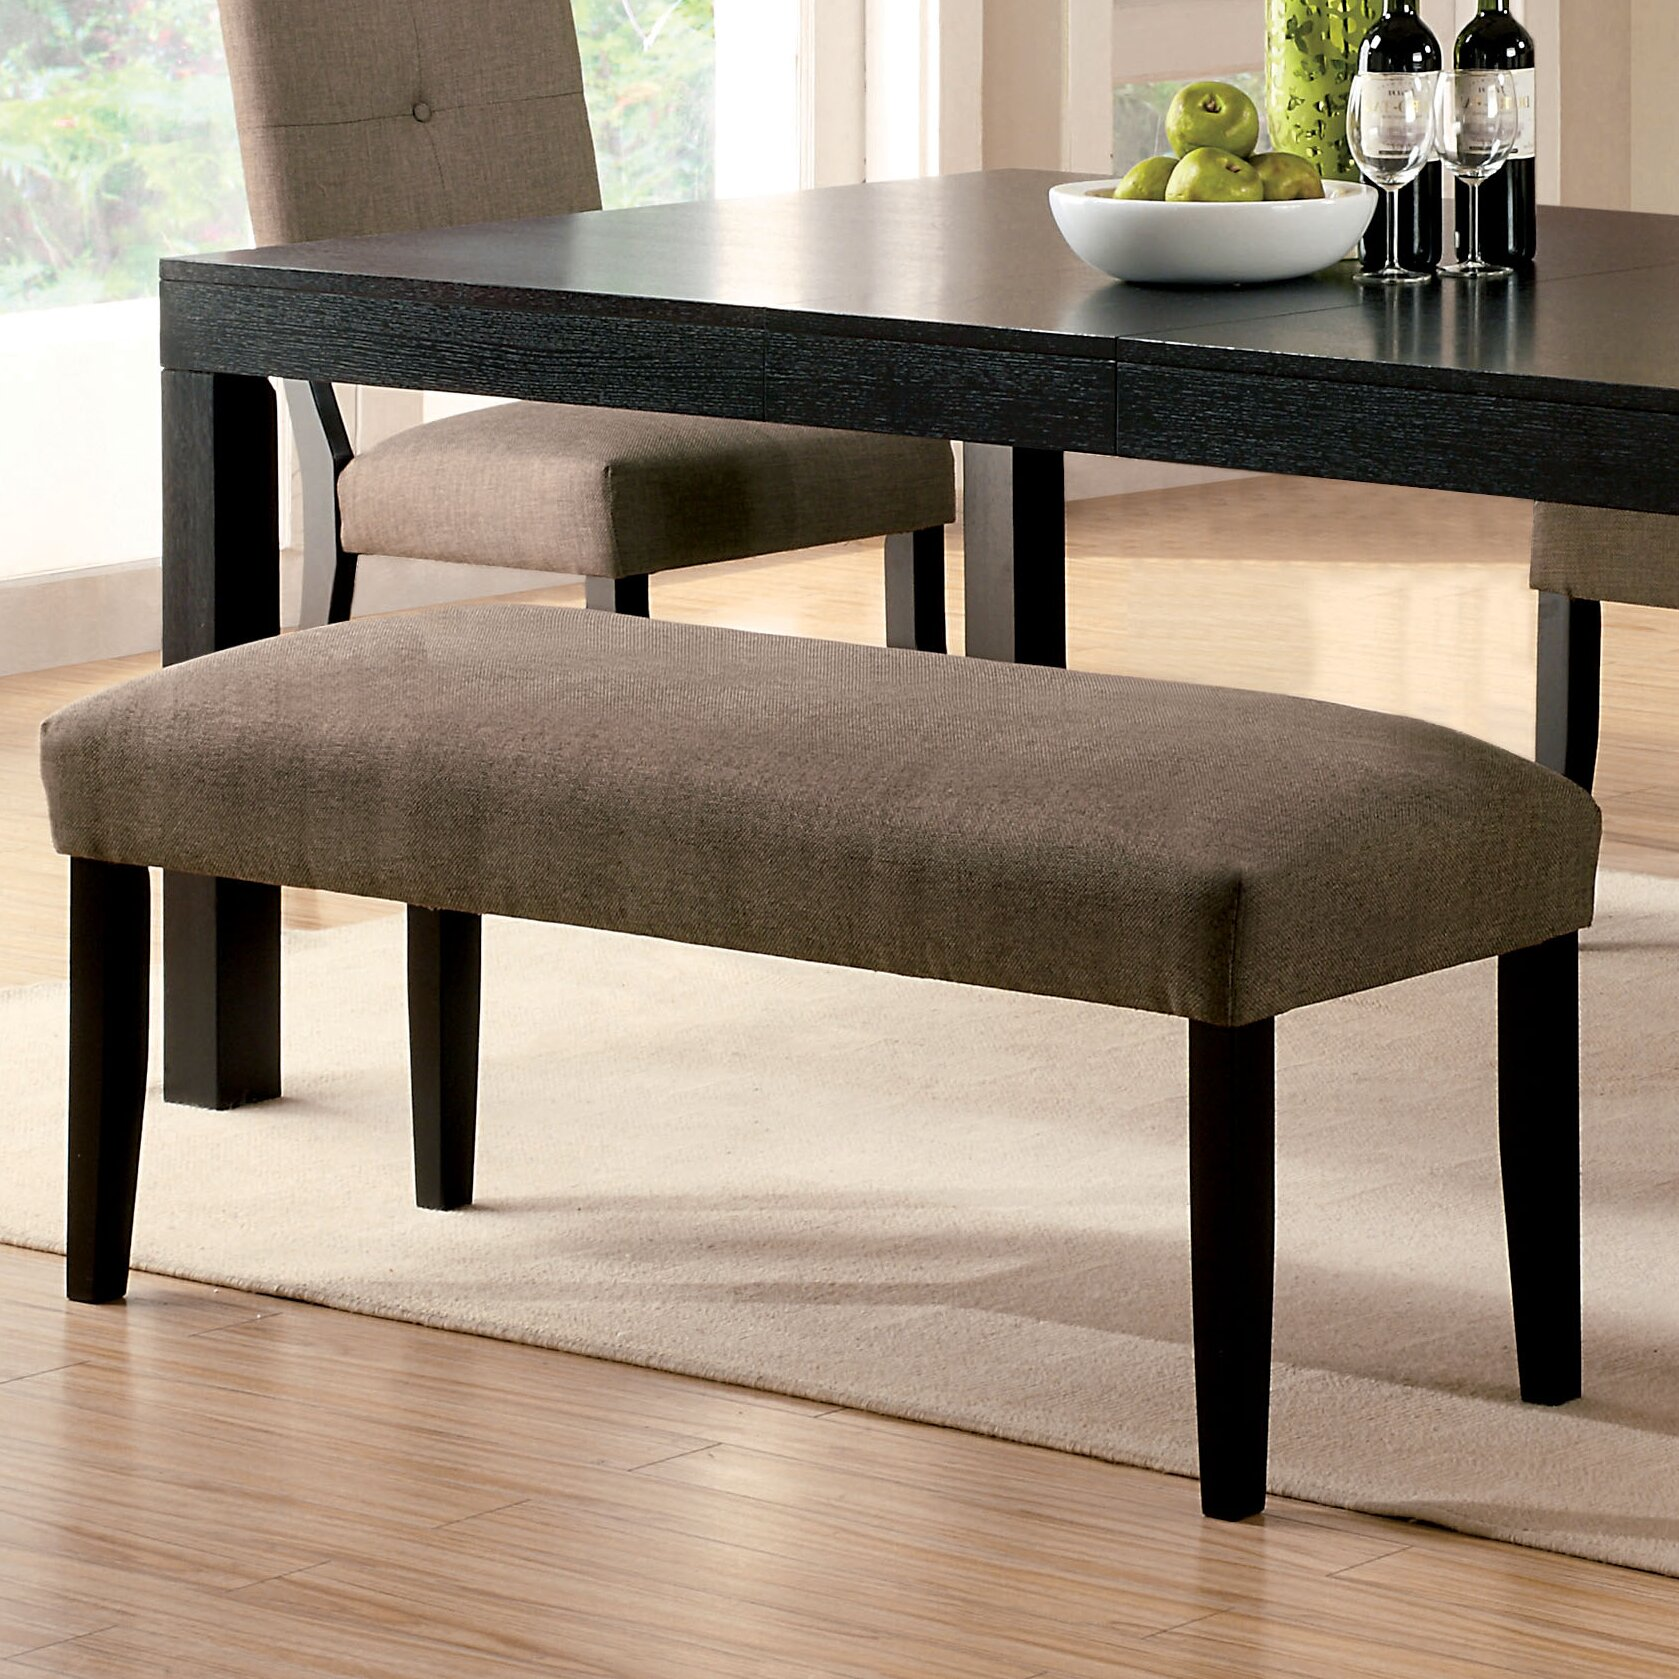 Hokku Designs Two Seat Bench Reviews Wayfair